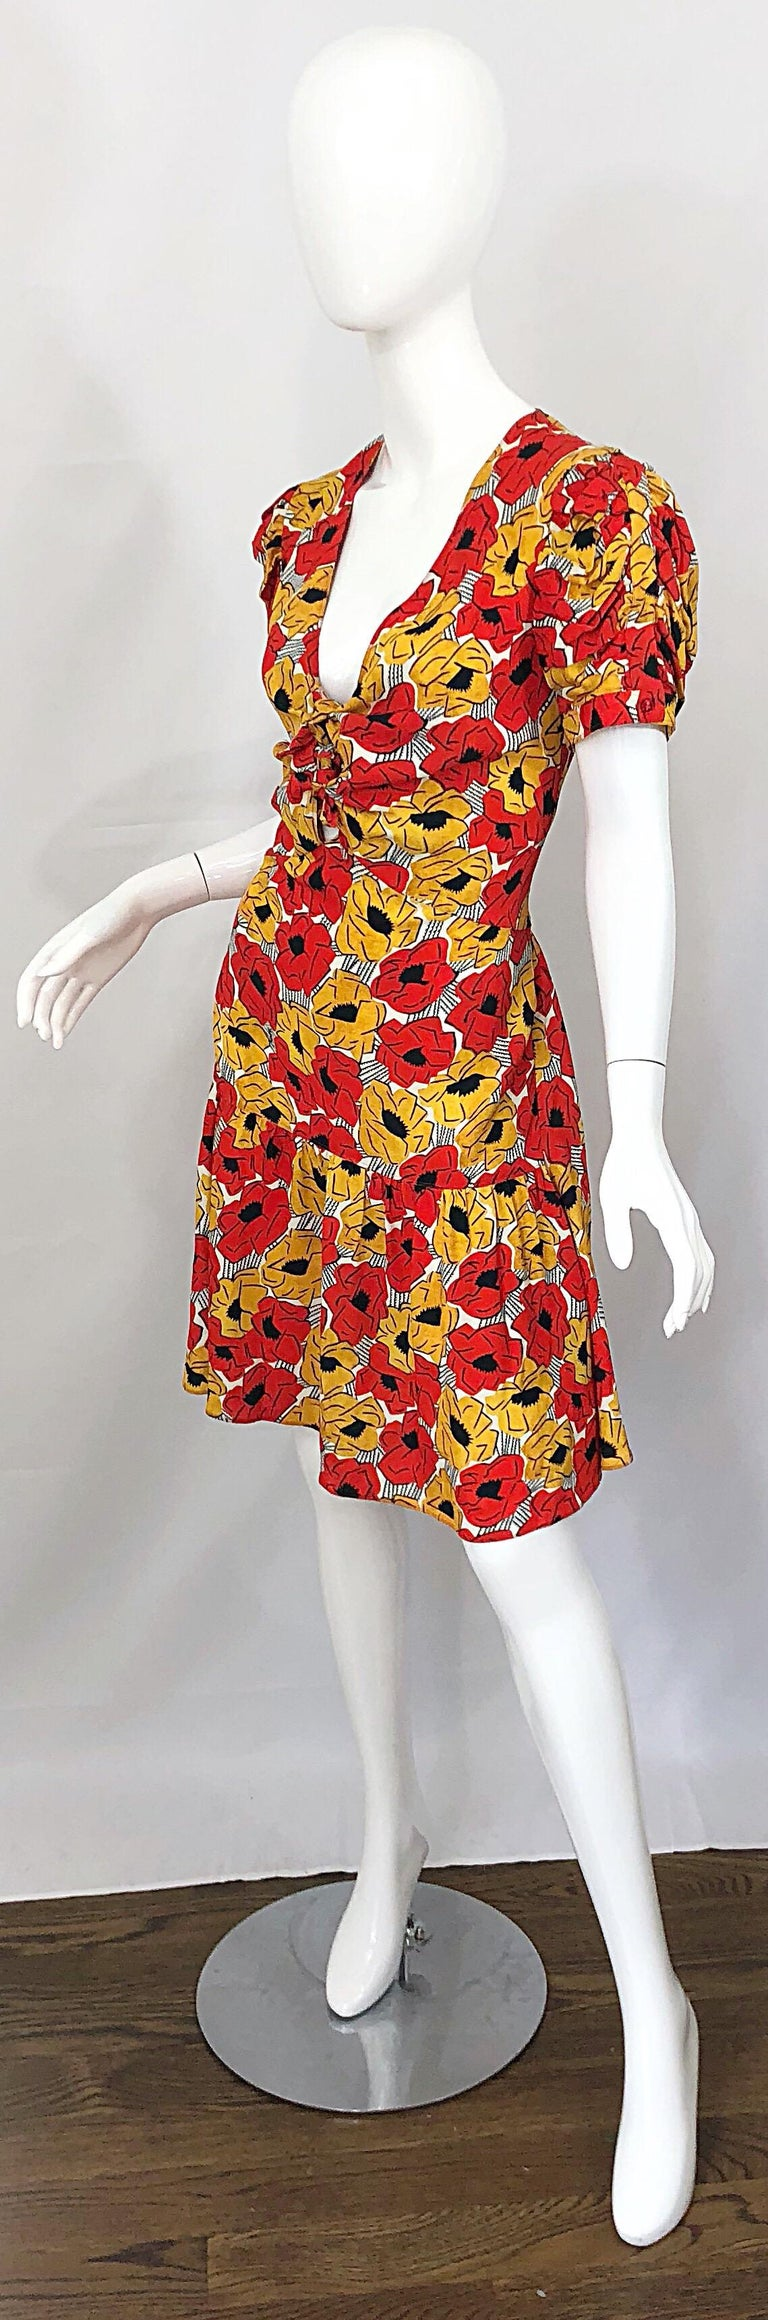 Yves Saint Laurent YSL Size 42 / 10 Yellow + Red Poppy Print Drop Waist Dress For Sale 1